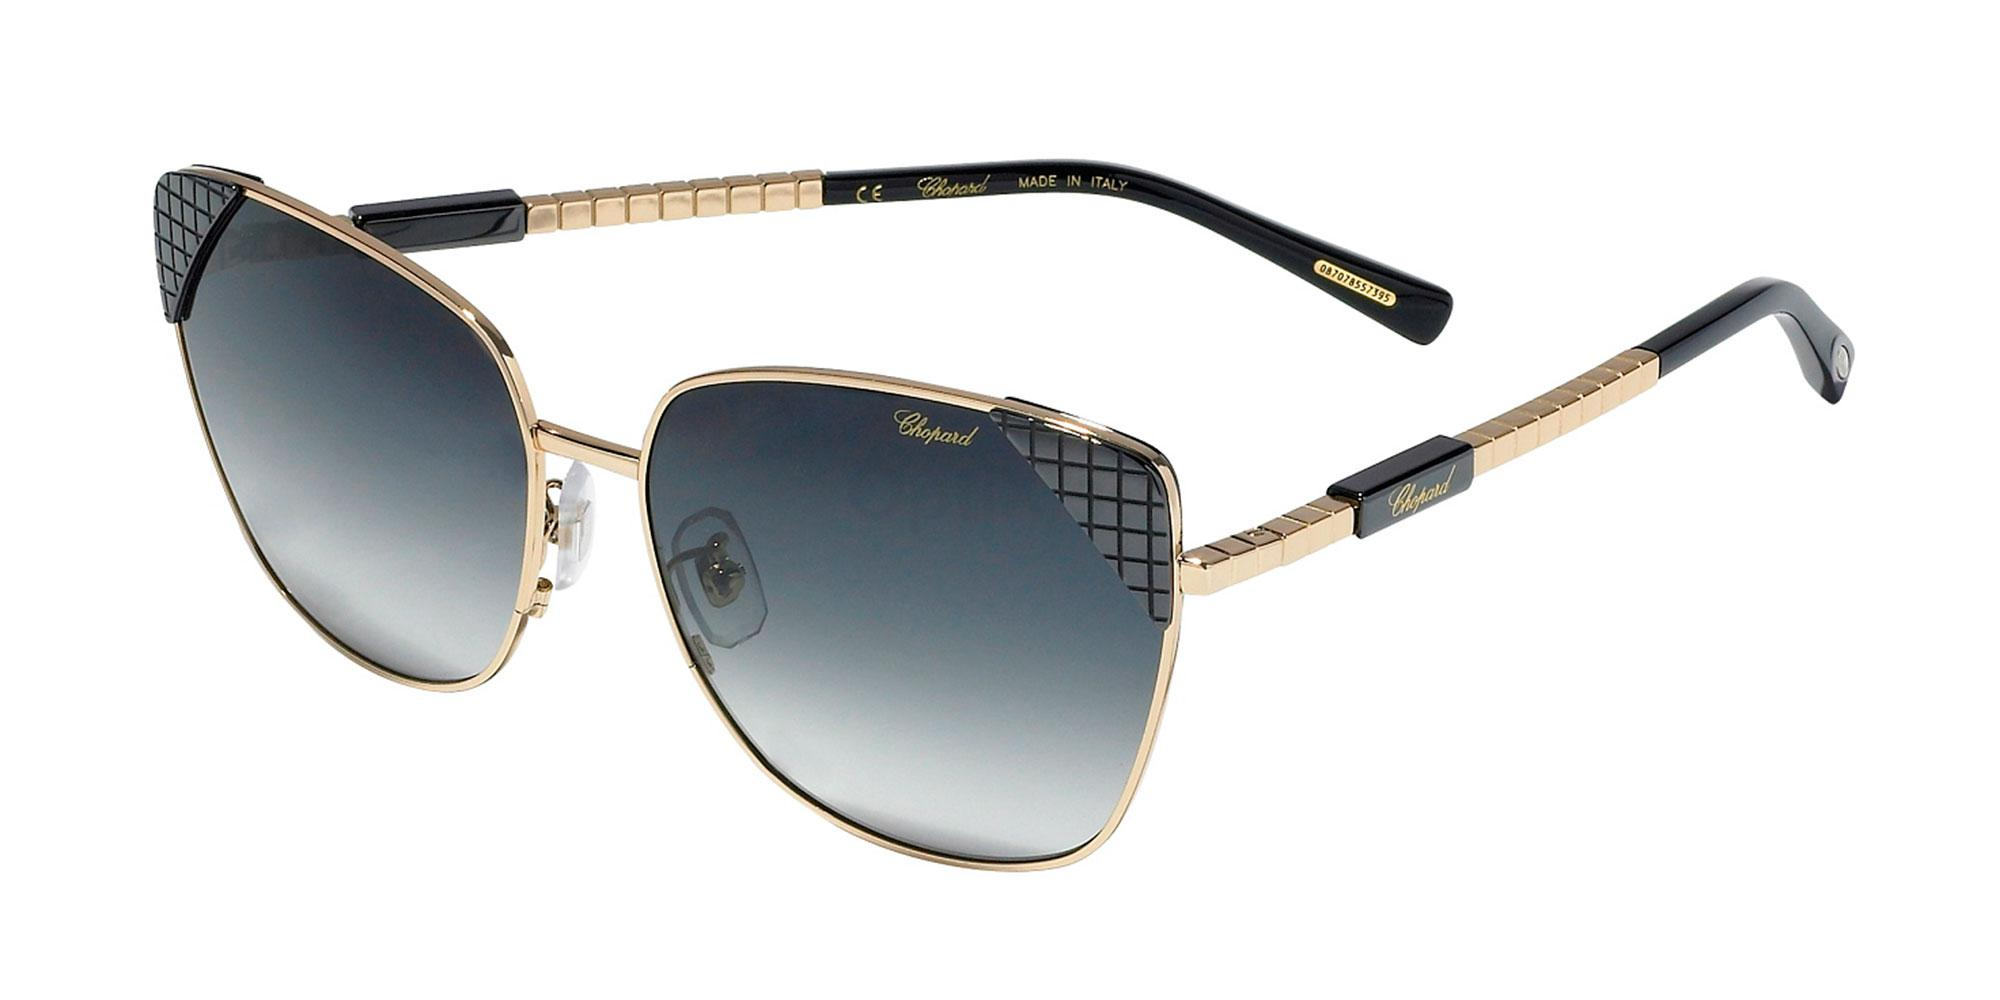 0300 SCHC41 Sunglasses, Chopard